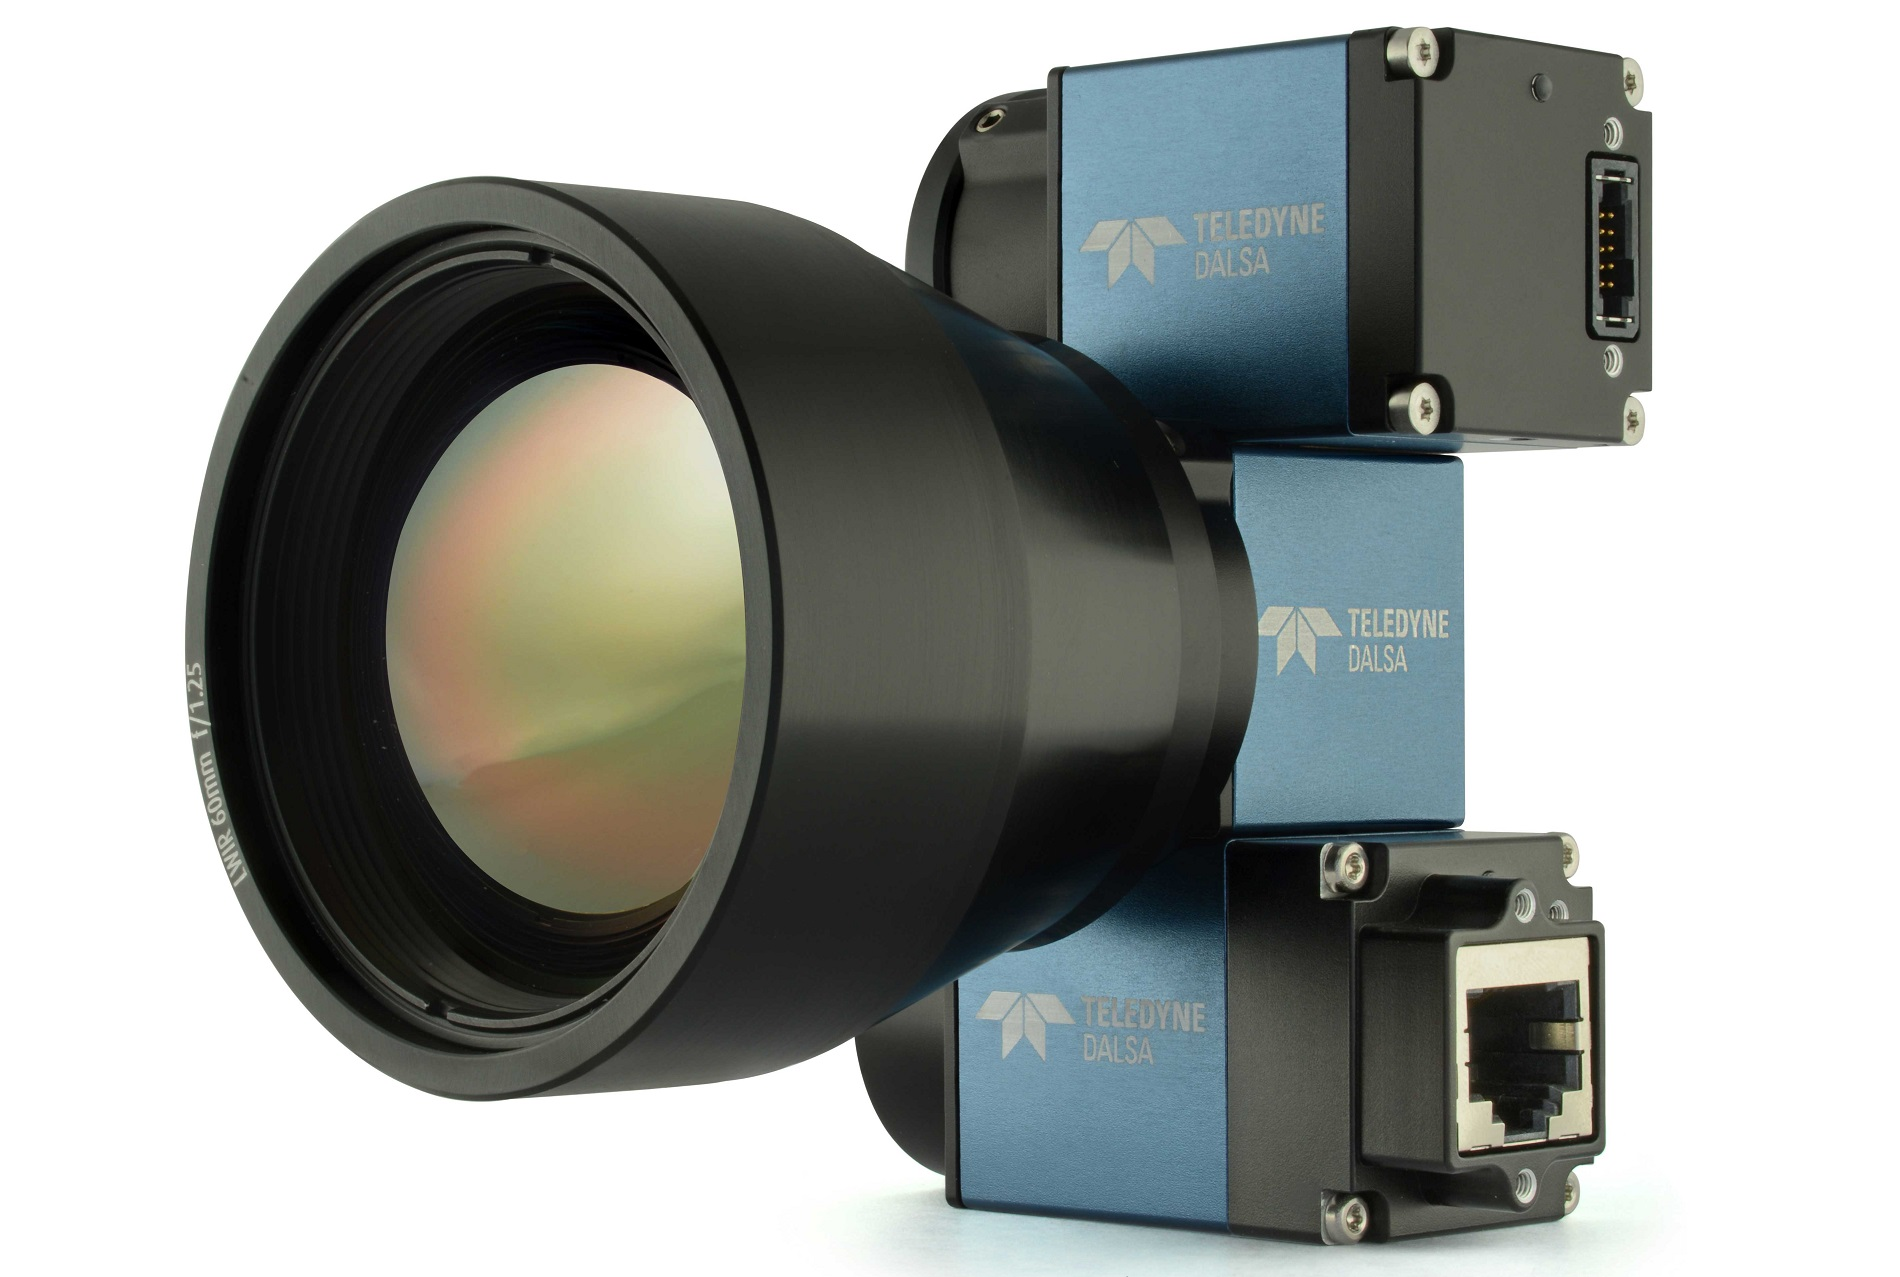 Teledyne DALSA will preview its CalibirTM DX series